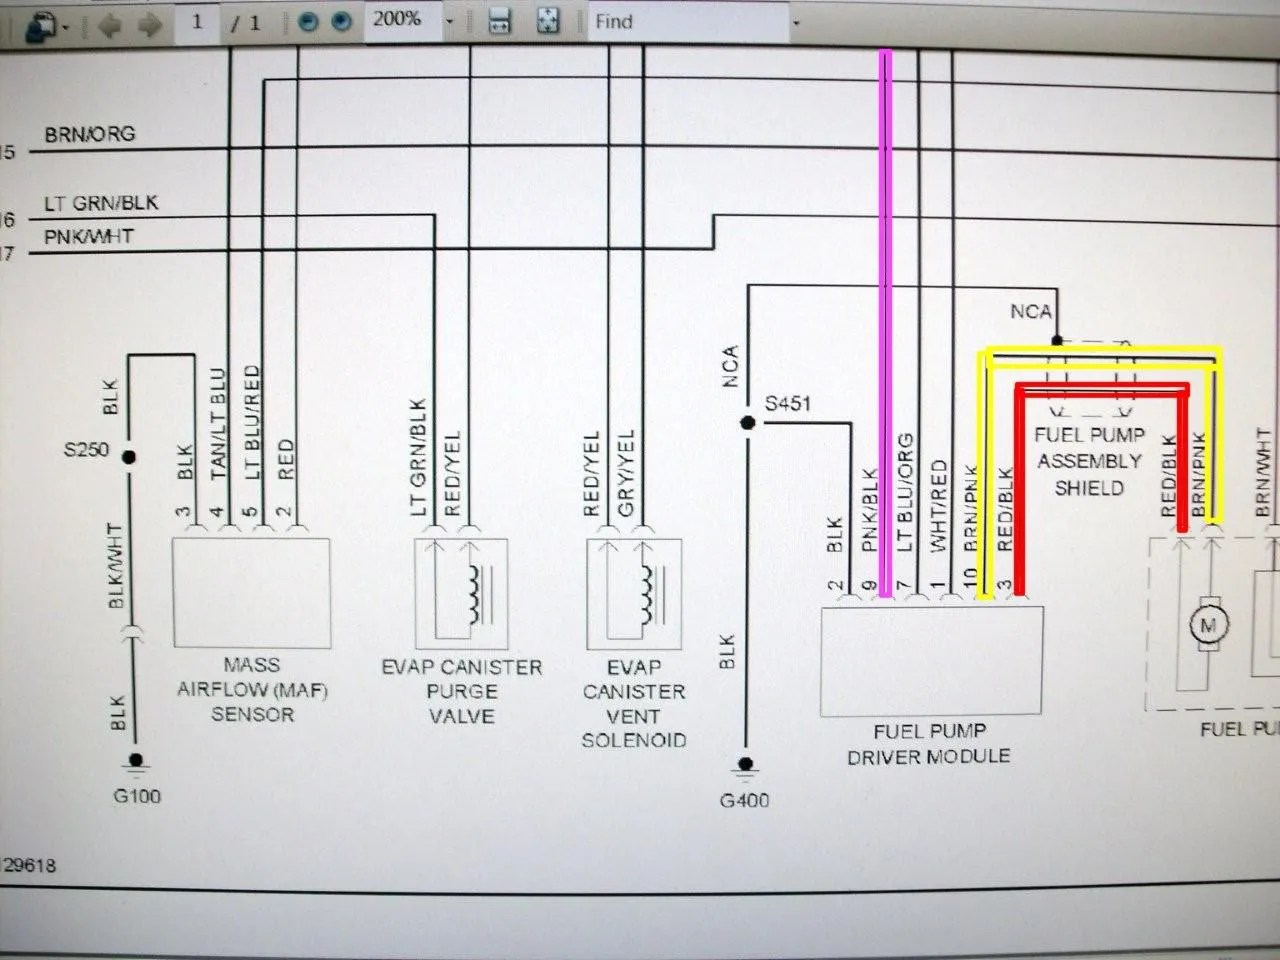 95 mustang gt fuel pump wiring diagram lpg conversion where is the relay mustangforums com these wires run directly to your from driver module good luck hope this helps tommy